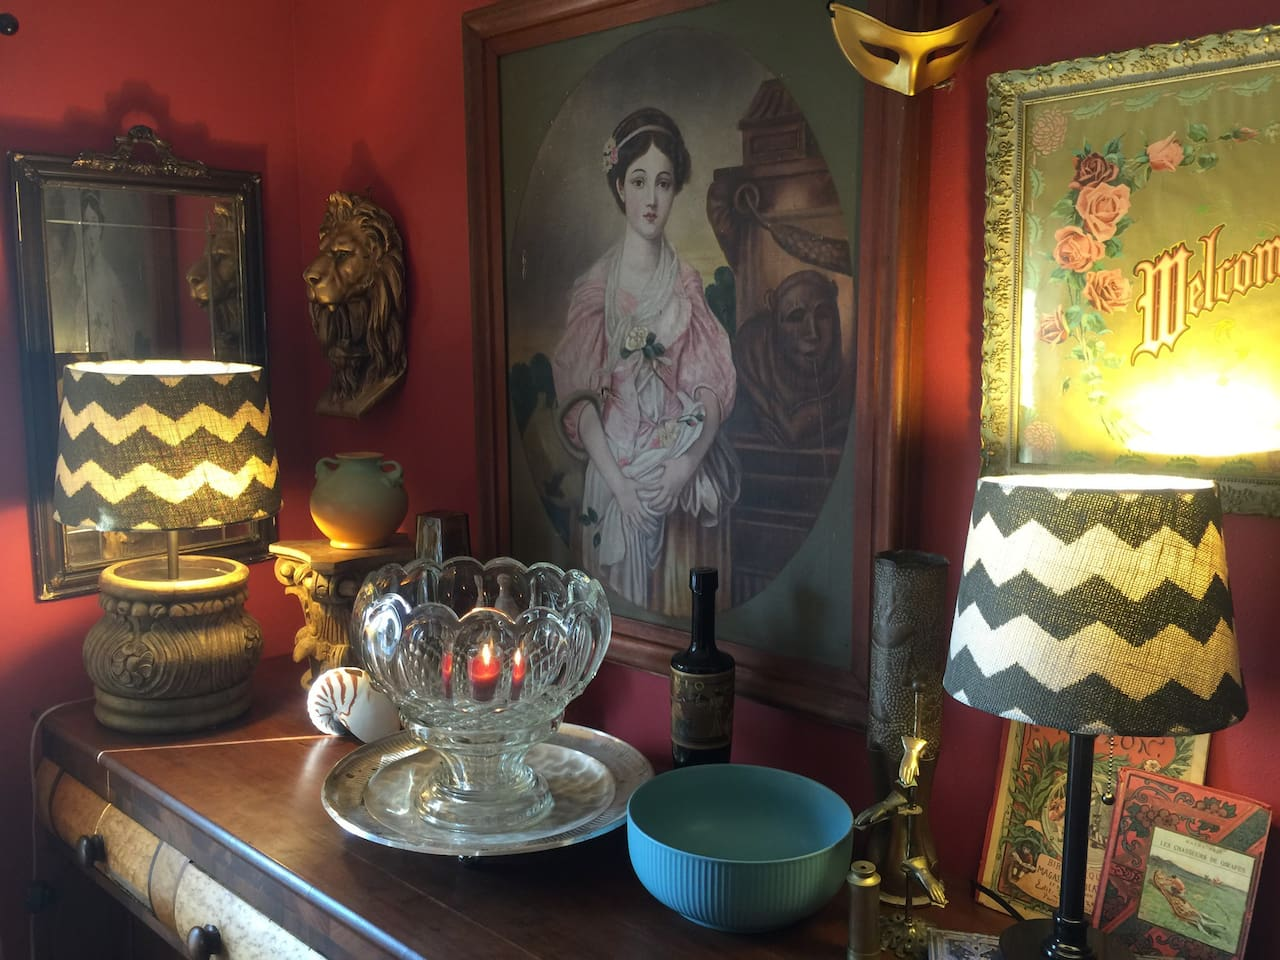 Uncommon Decor, and dining ammenities